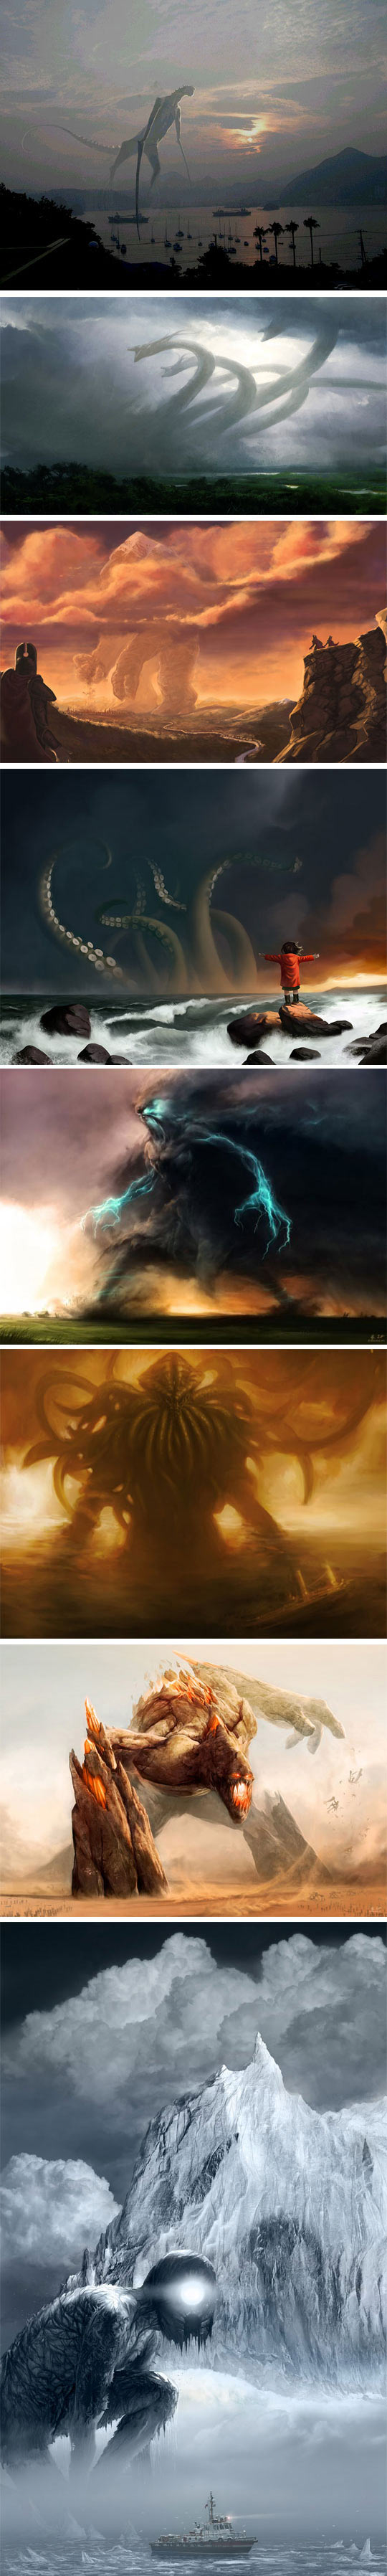 One Day, The Old Gods Will Return